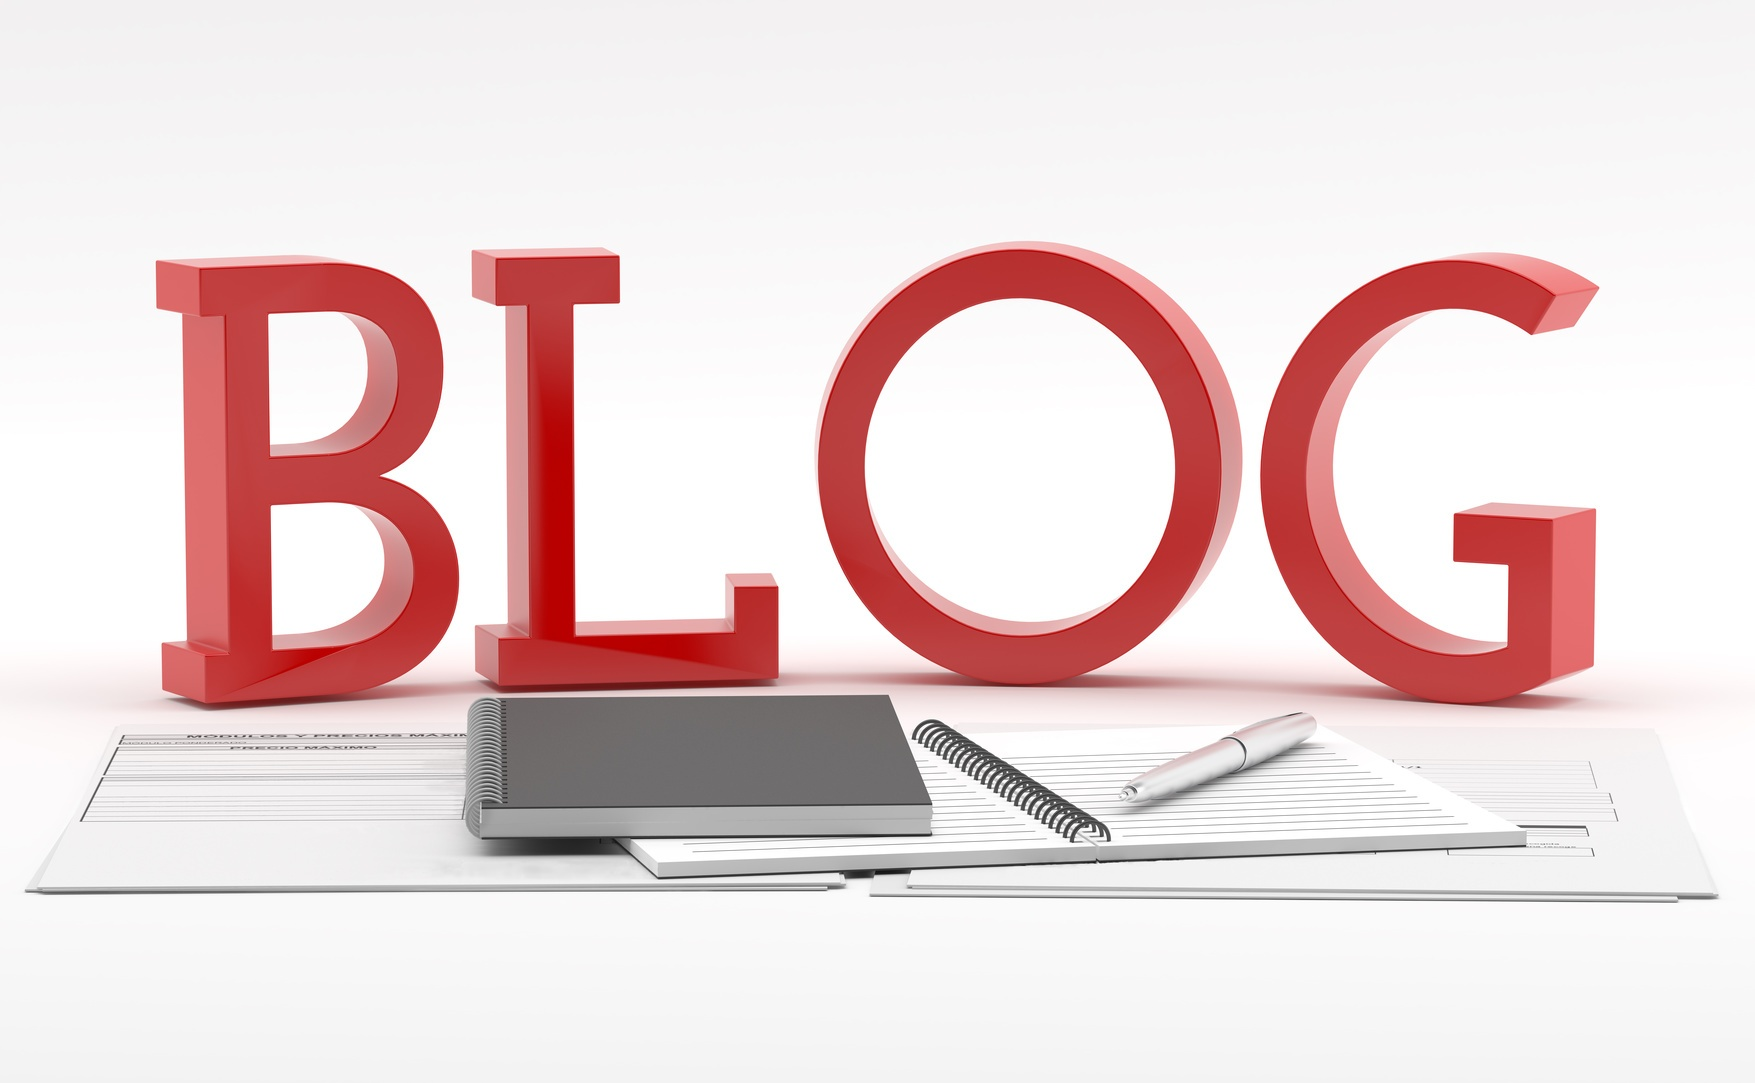 Make Sharing Easy to Increase Your Blog's Reach